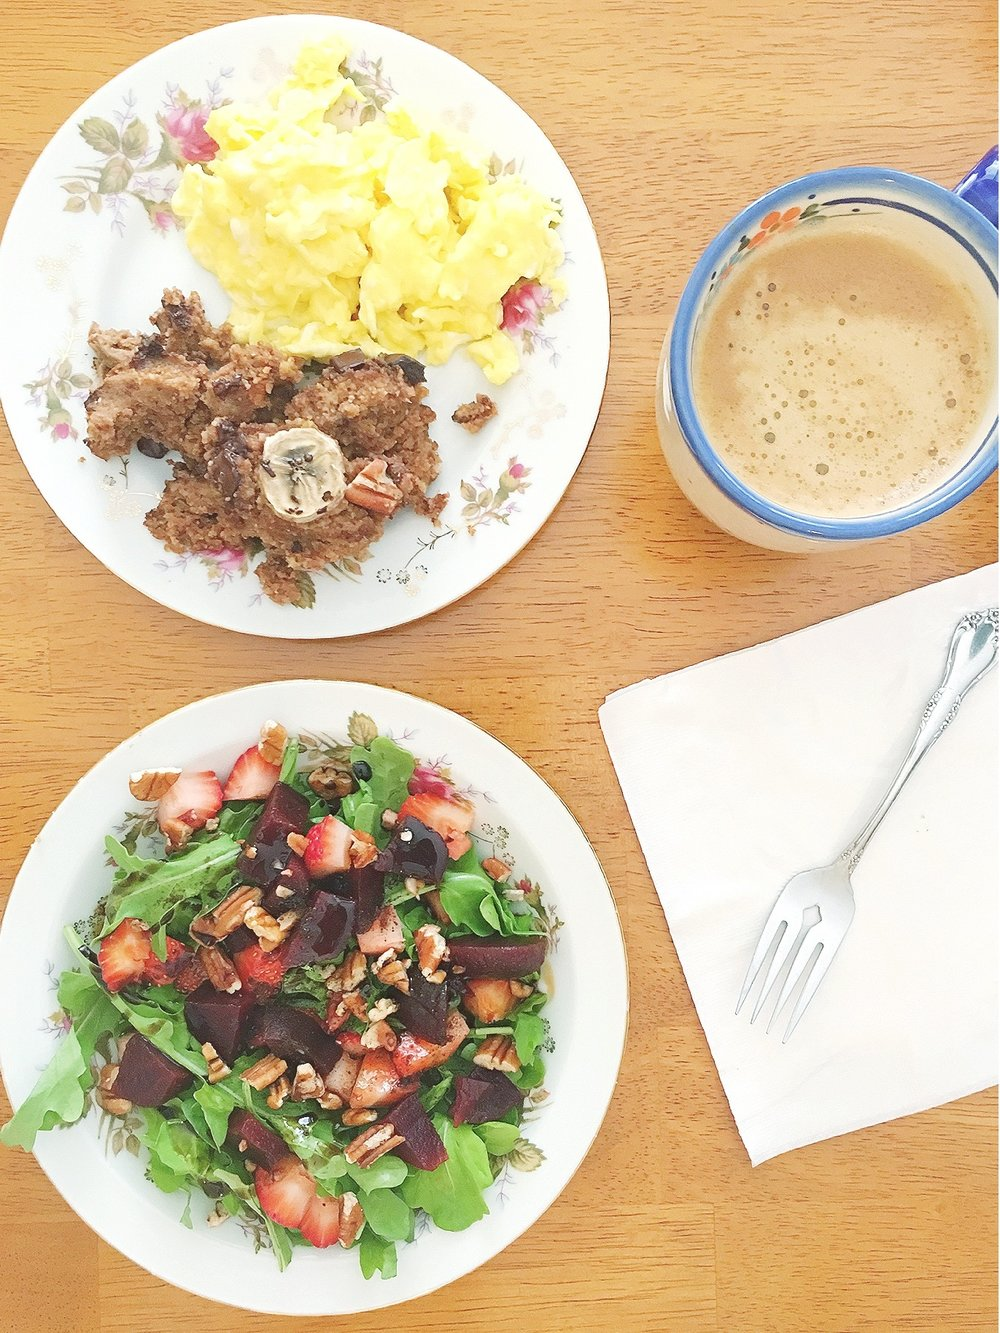 sweet stuffing - avec scrambled eggs and an arugula, strawberry, beet, and pecan salad drizzled with strawberry and vanilla balsamic vinegar